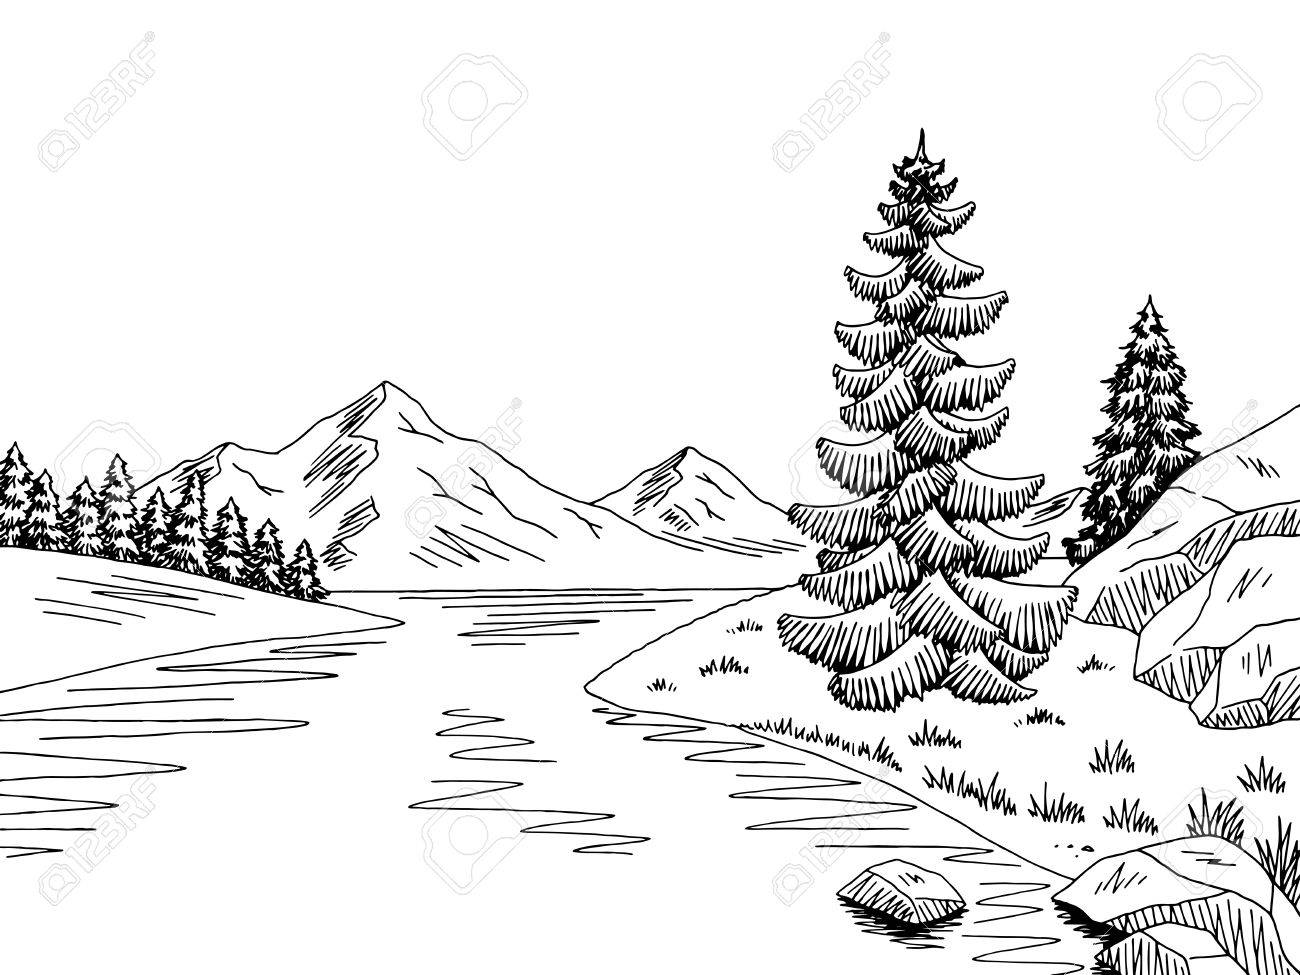 Black and white river clipart » Clipart Station.